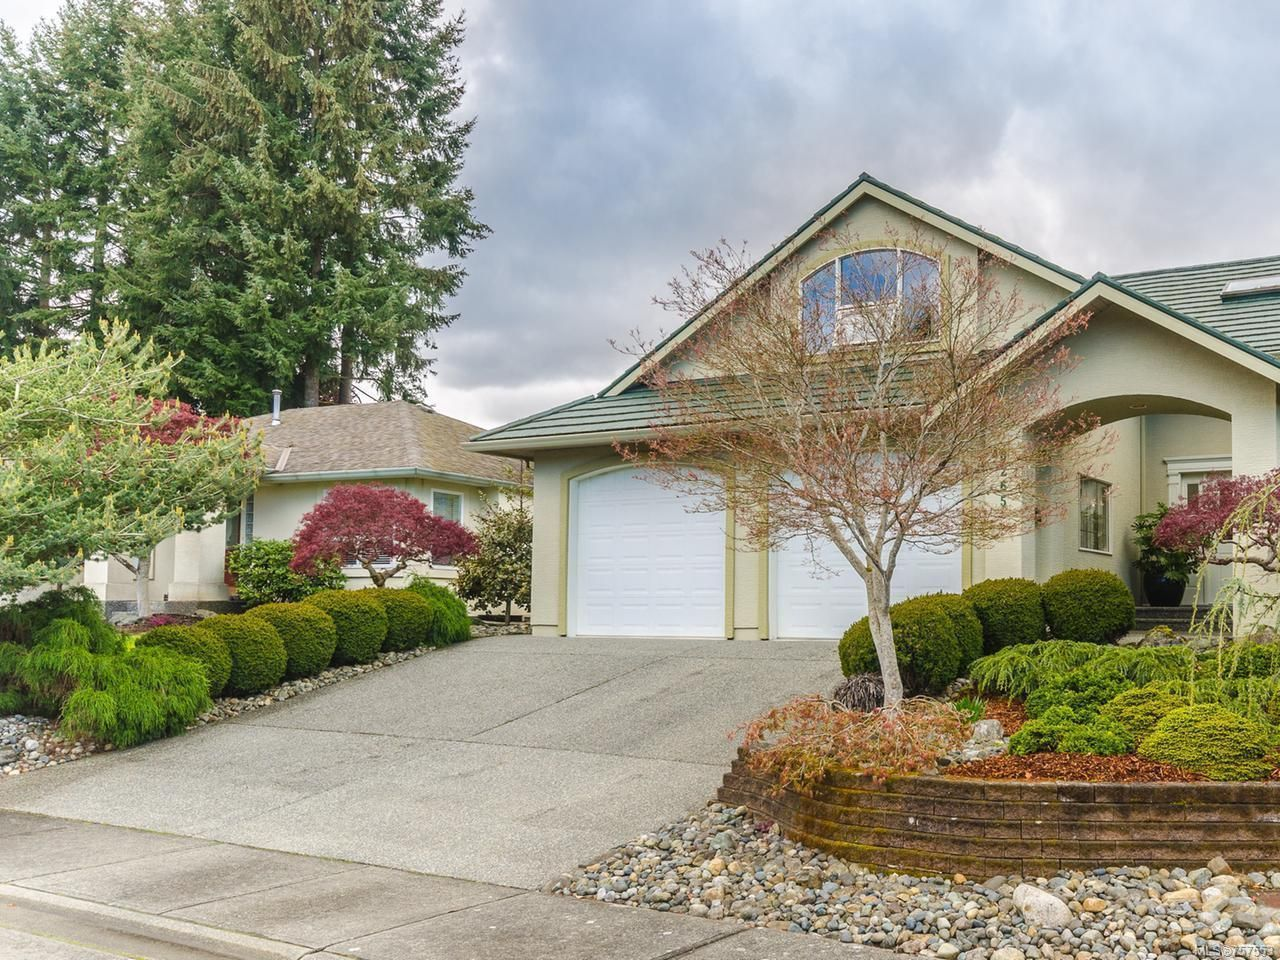 Main Photo: 6265 FERLEY PLACE in NANAIMO: Na North Nanaimo House for sale (Nanaimo)  : MLS®# 757553